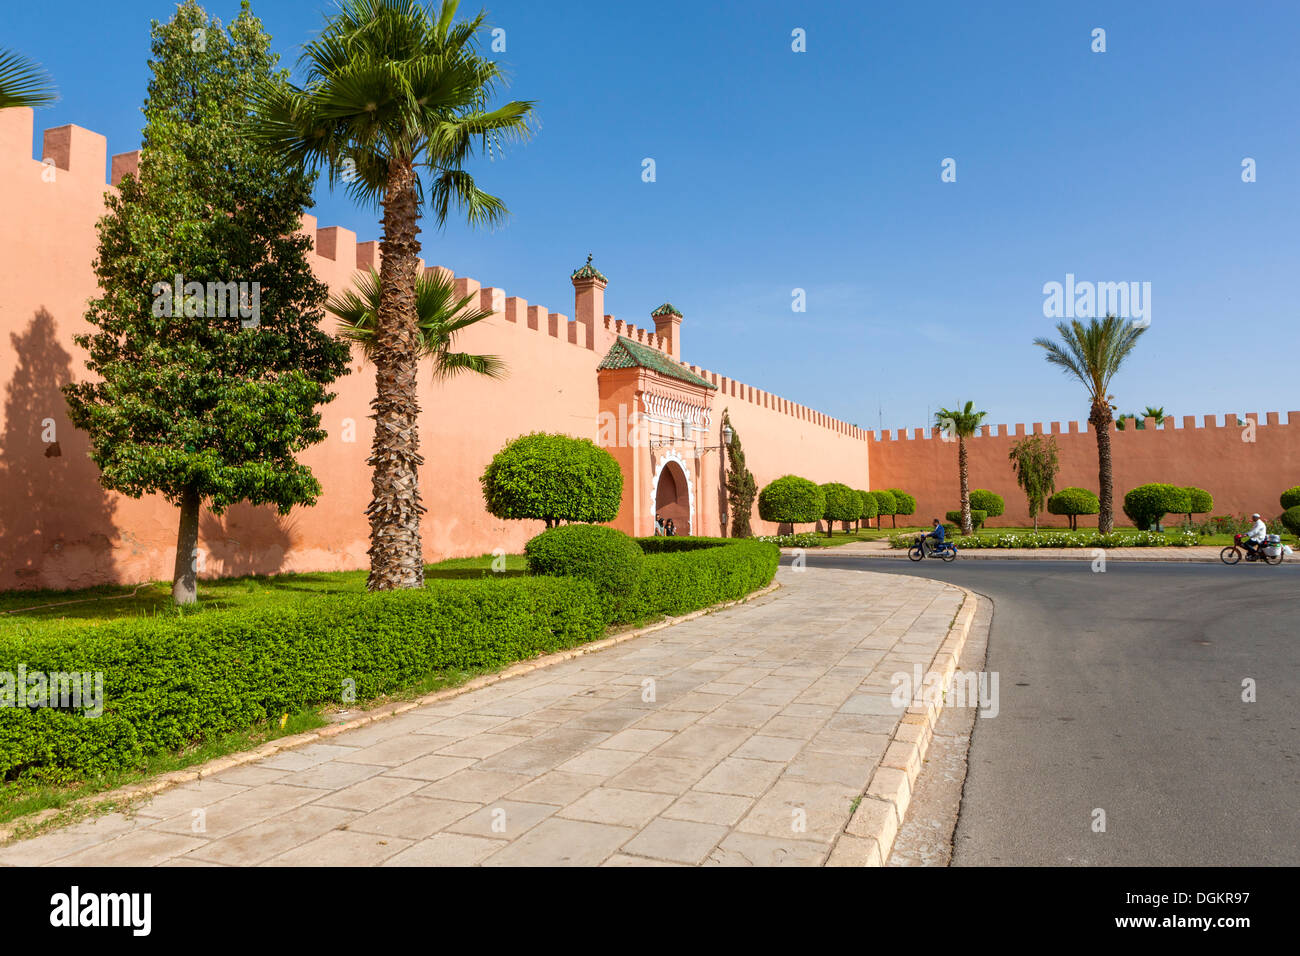 The city wall of Marrakech. - Stock Image